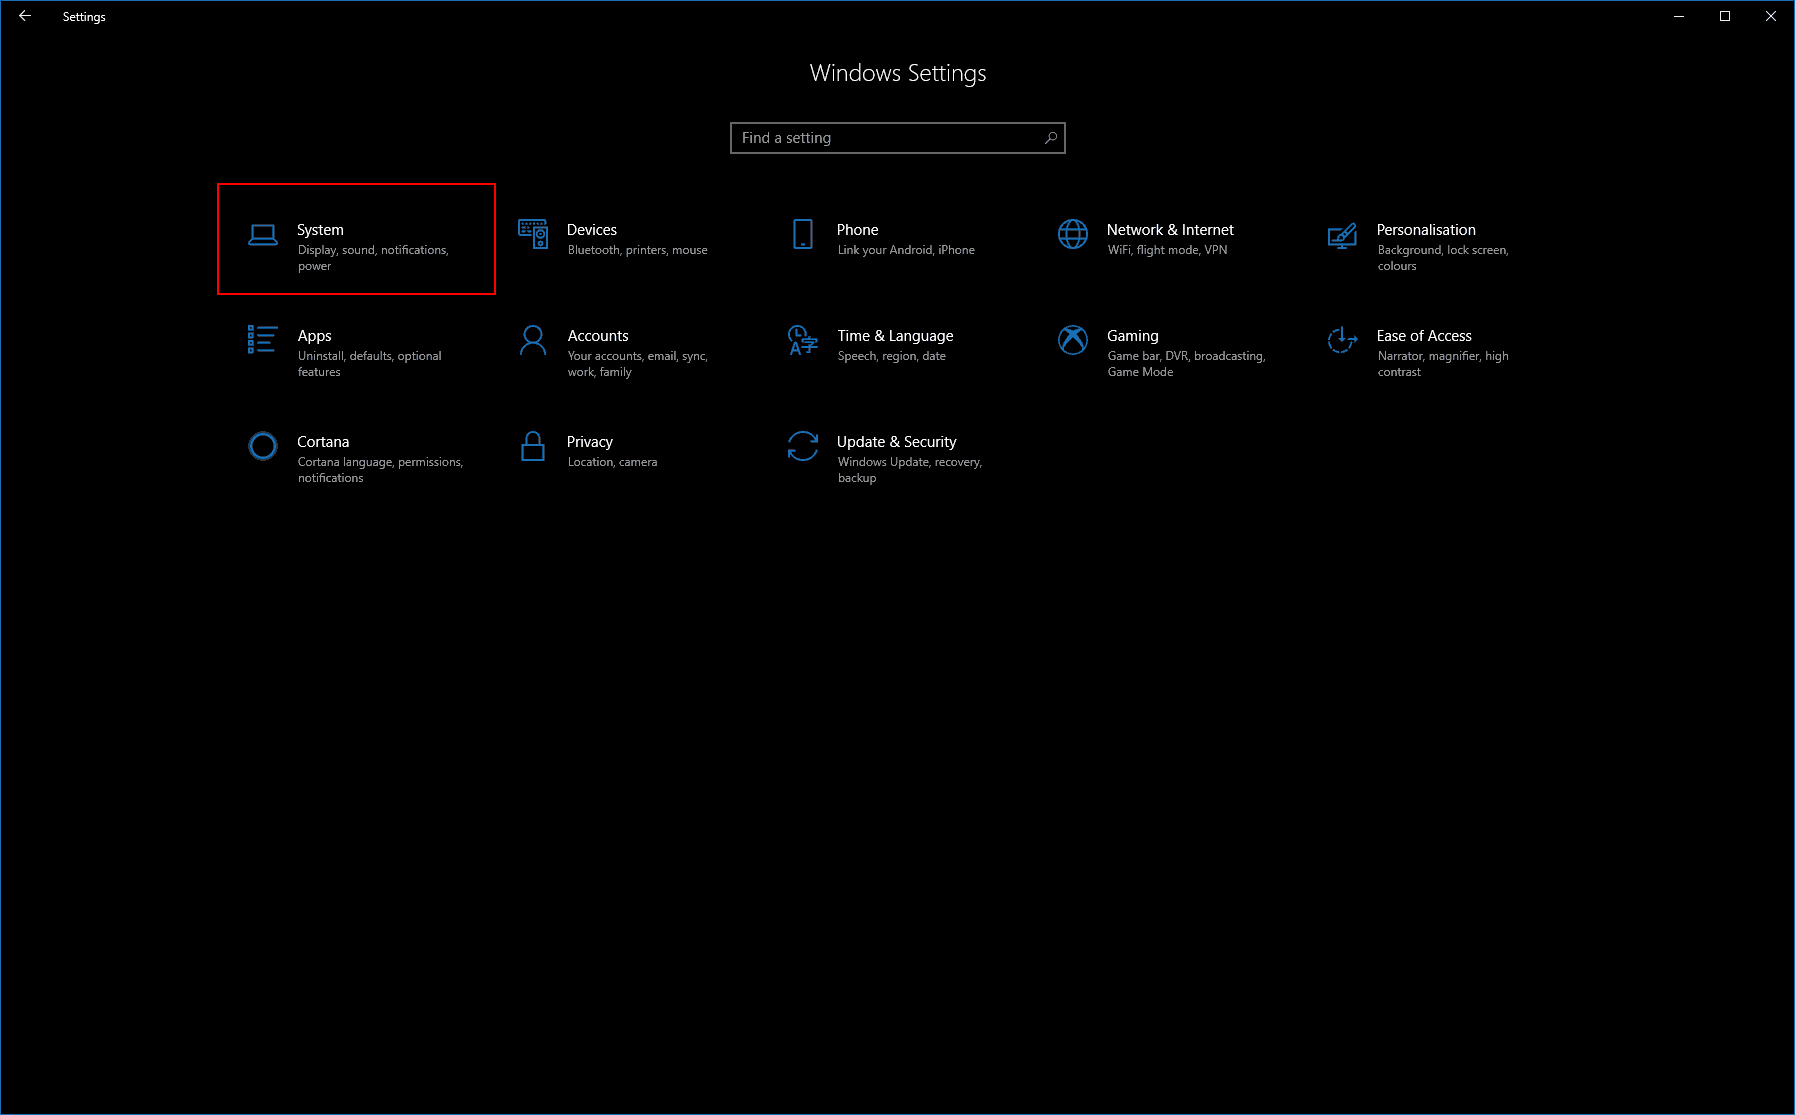 Windows 10 Settings About screenshot